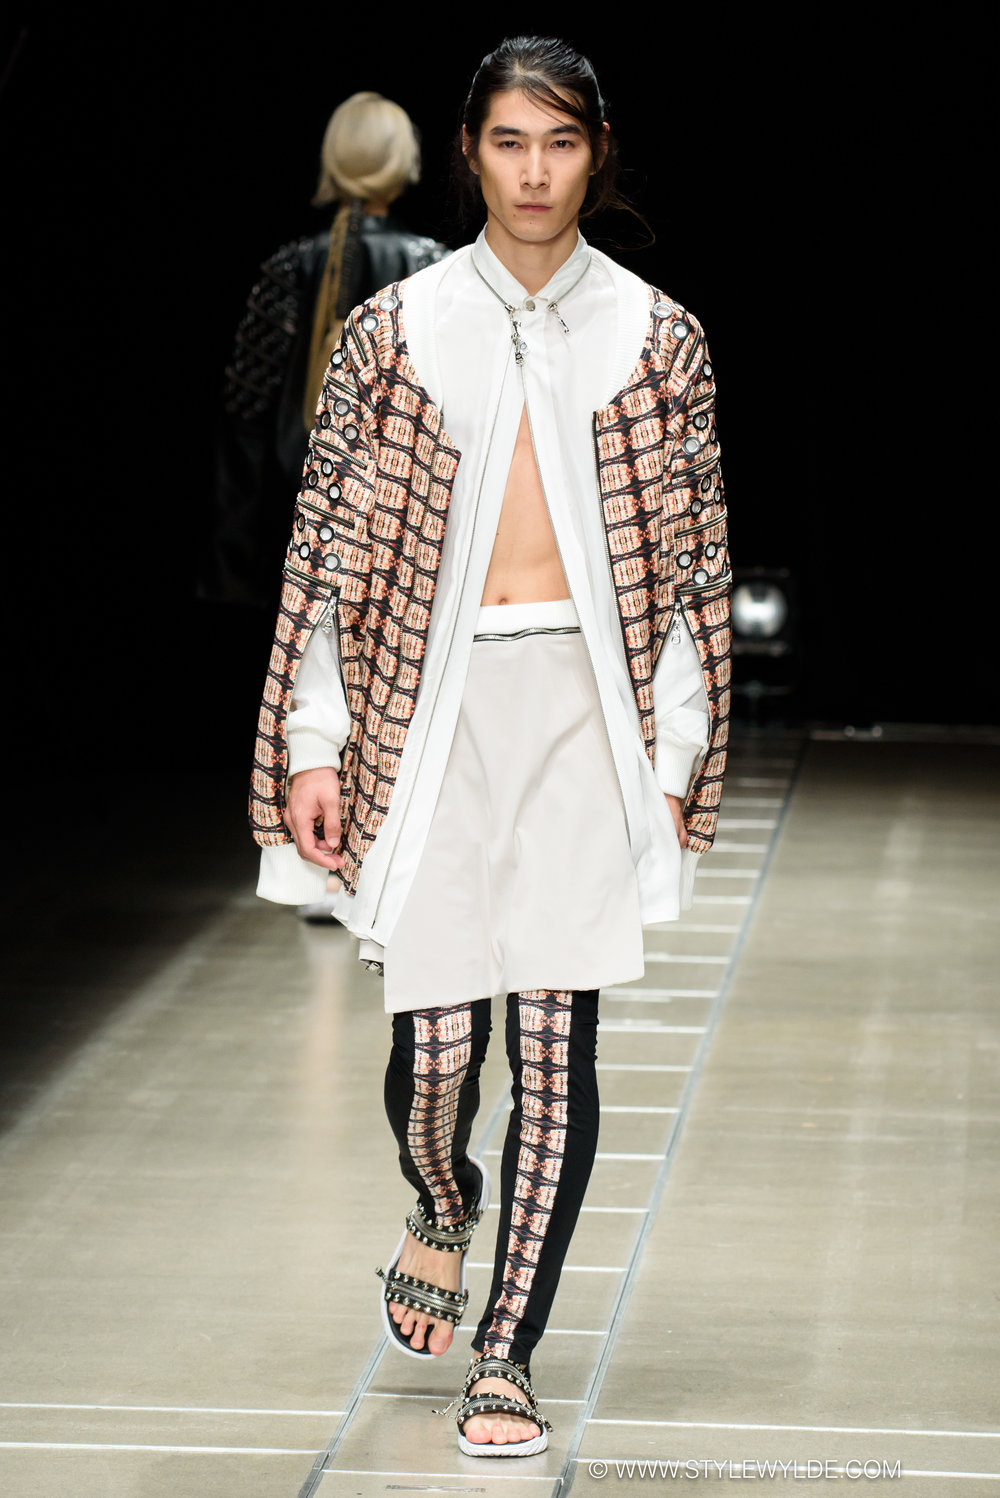 stylewylde_acuod_by_chanu_SS18_runway-19.jpg